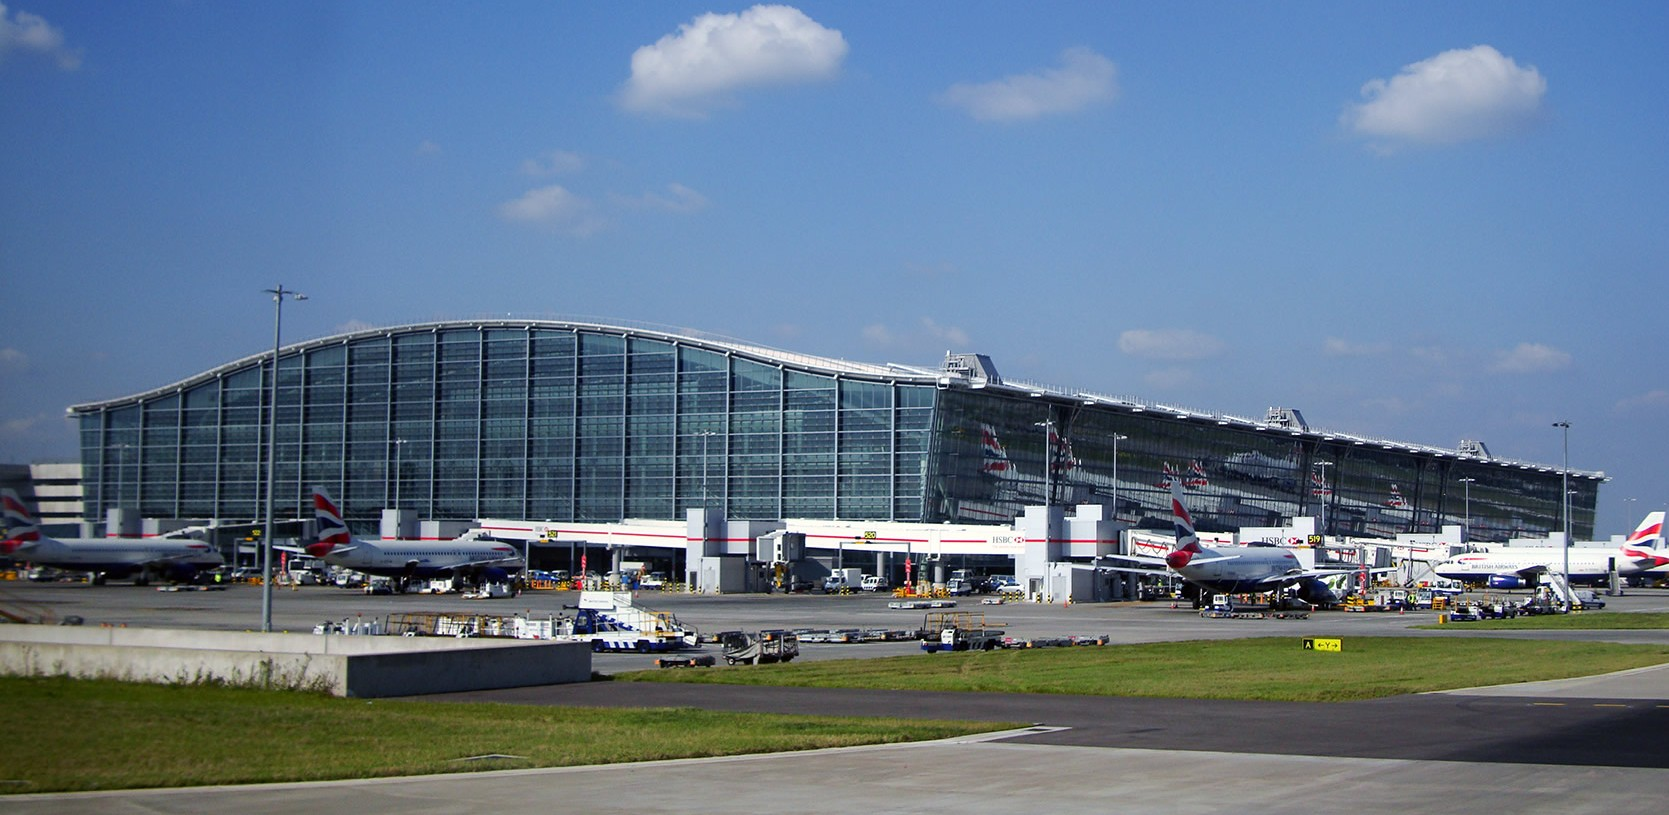 Terminal 5 i London Heathrow. Foto: Warren Rohner